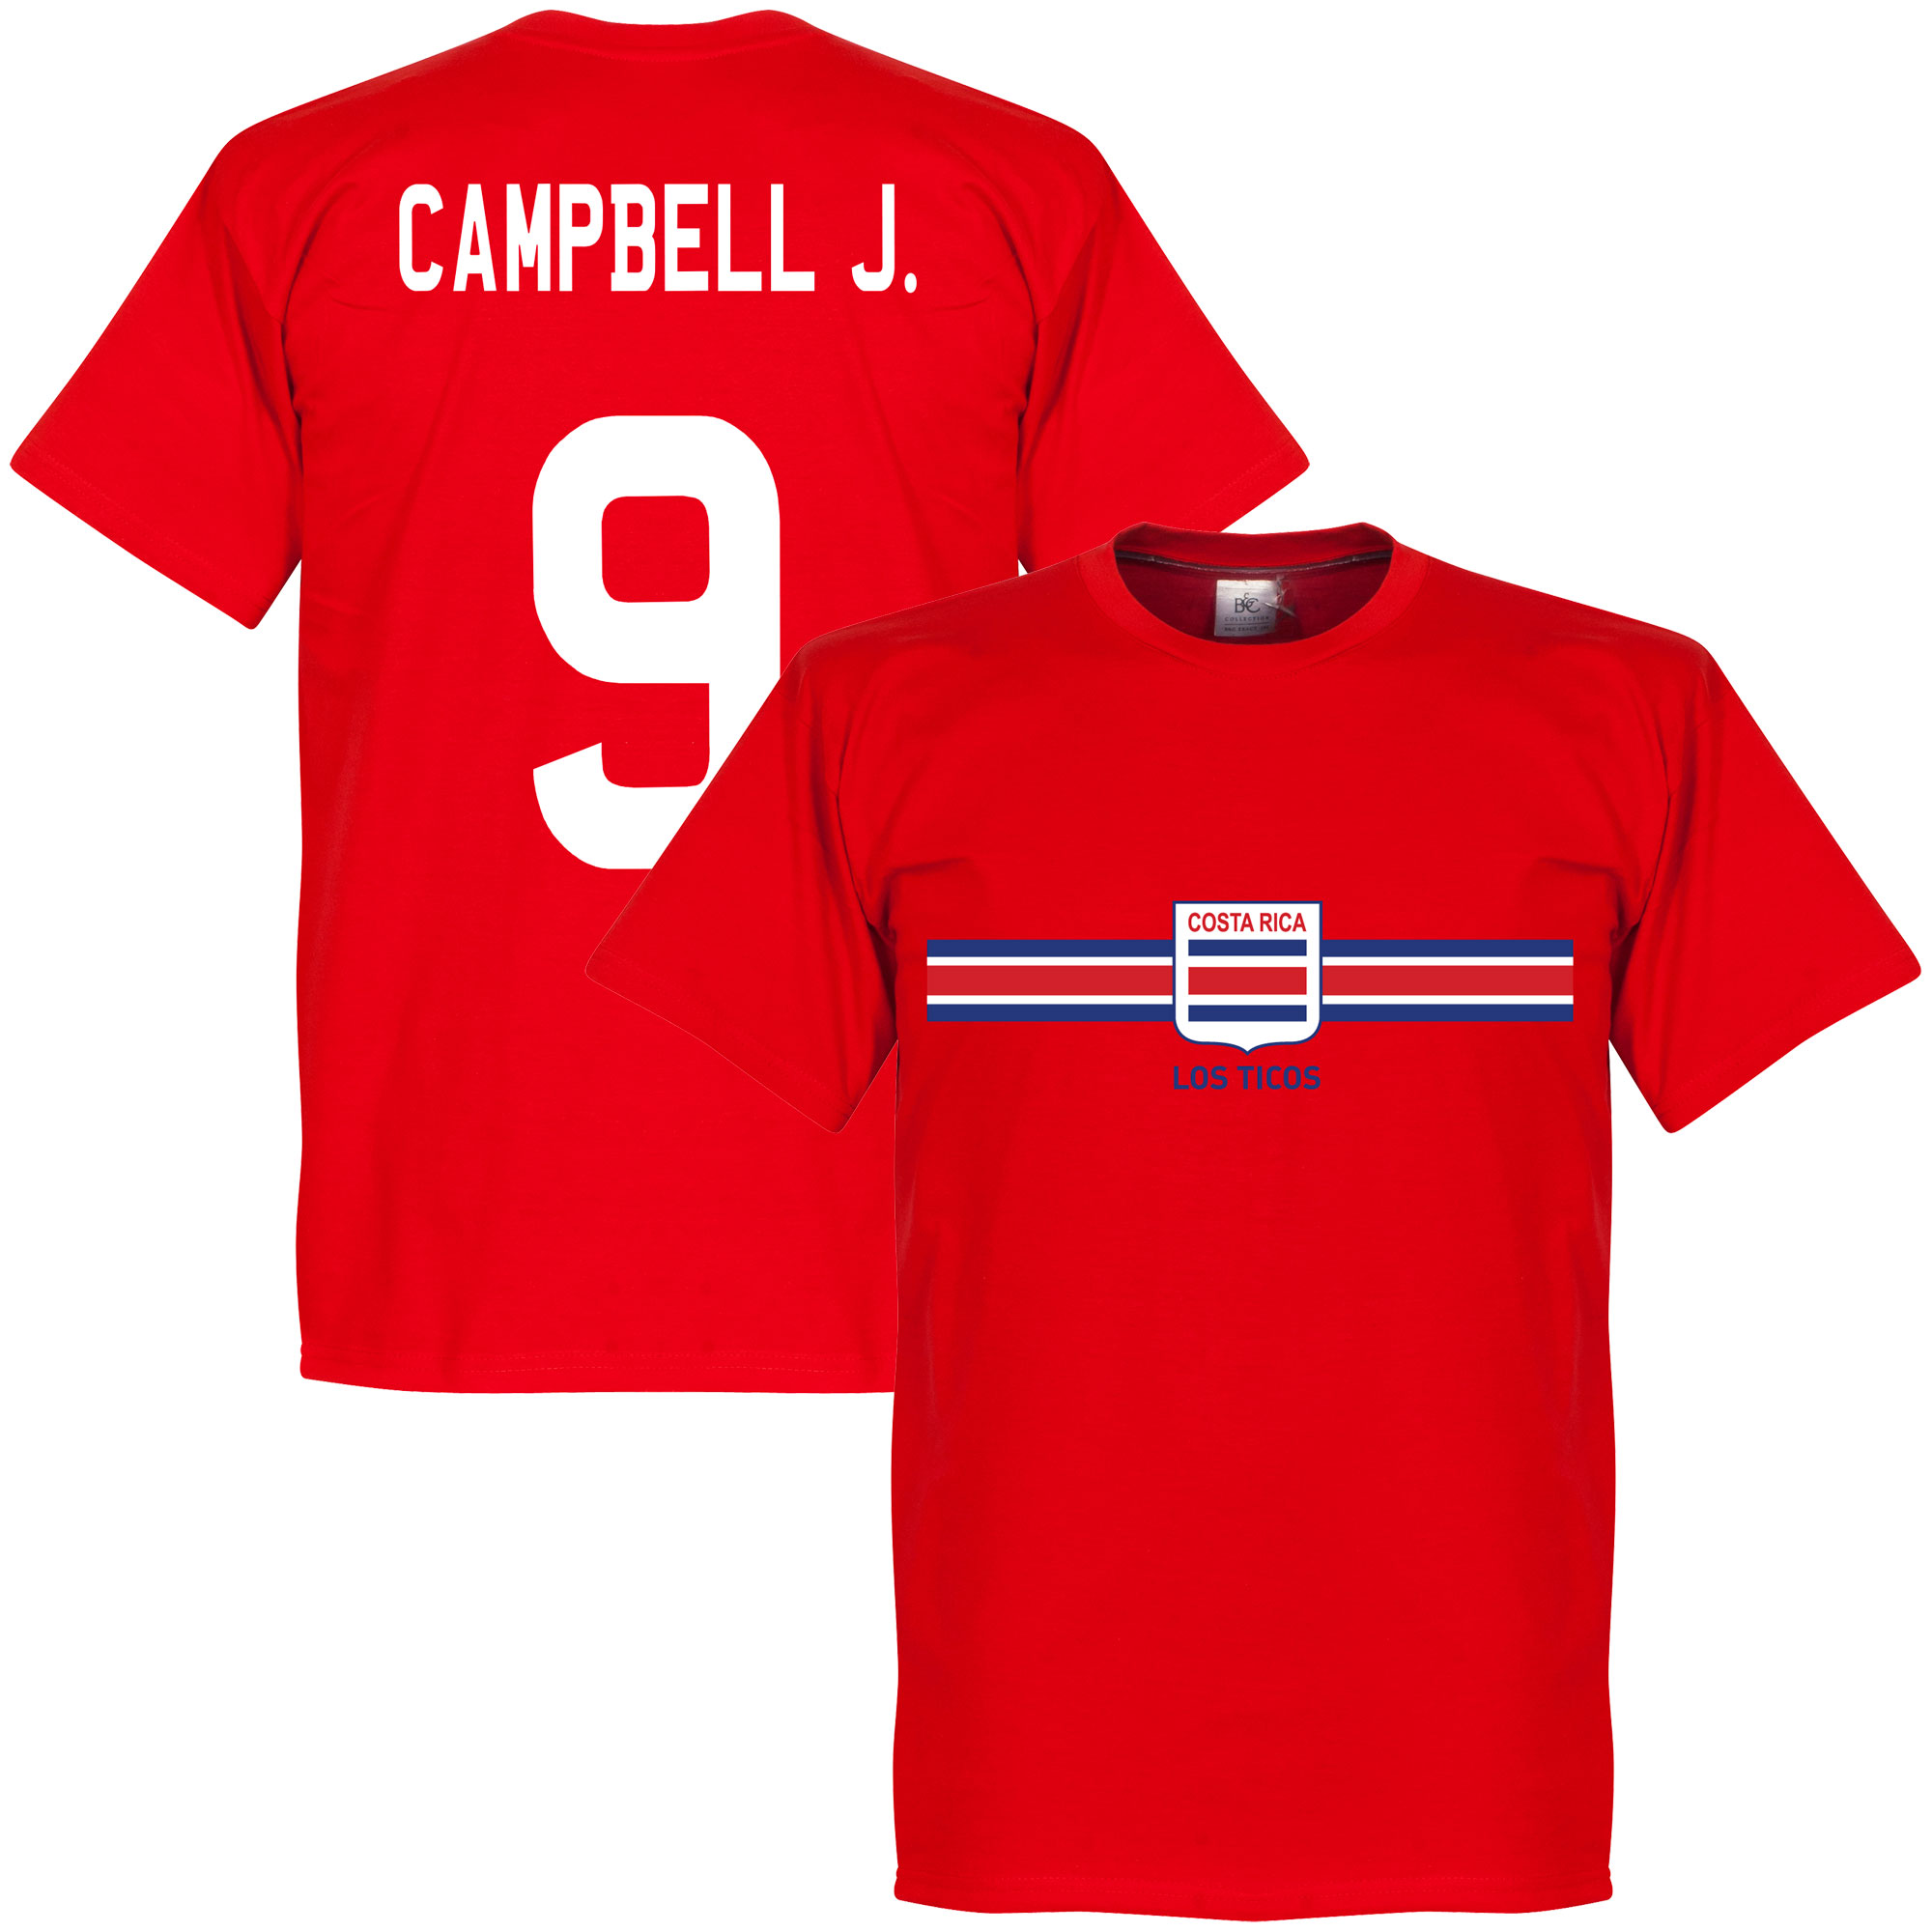 Costa Rica Campbell J. Tee - Red - M